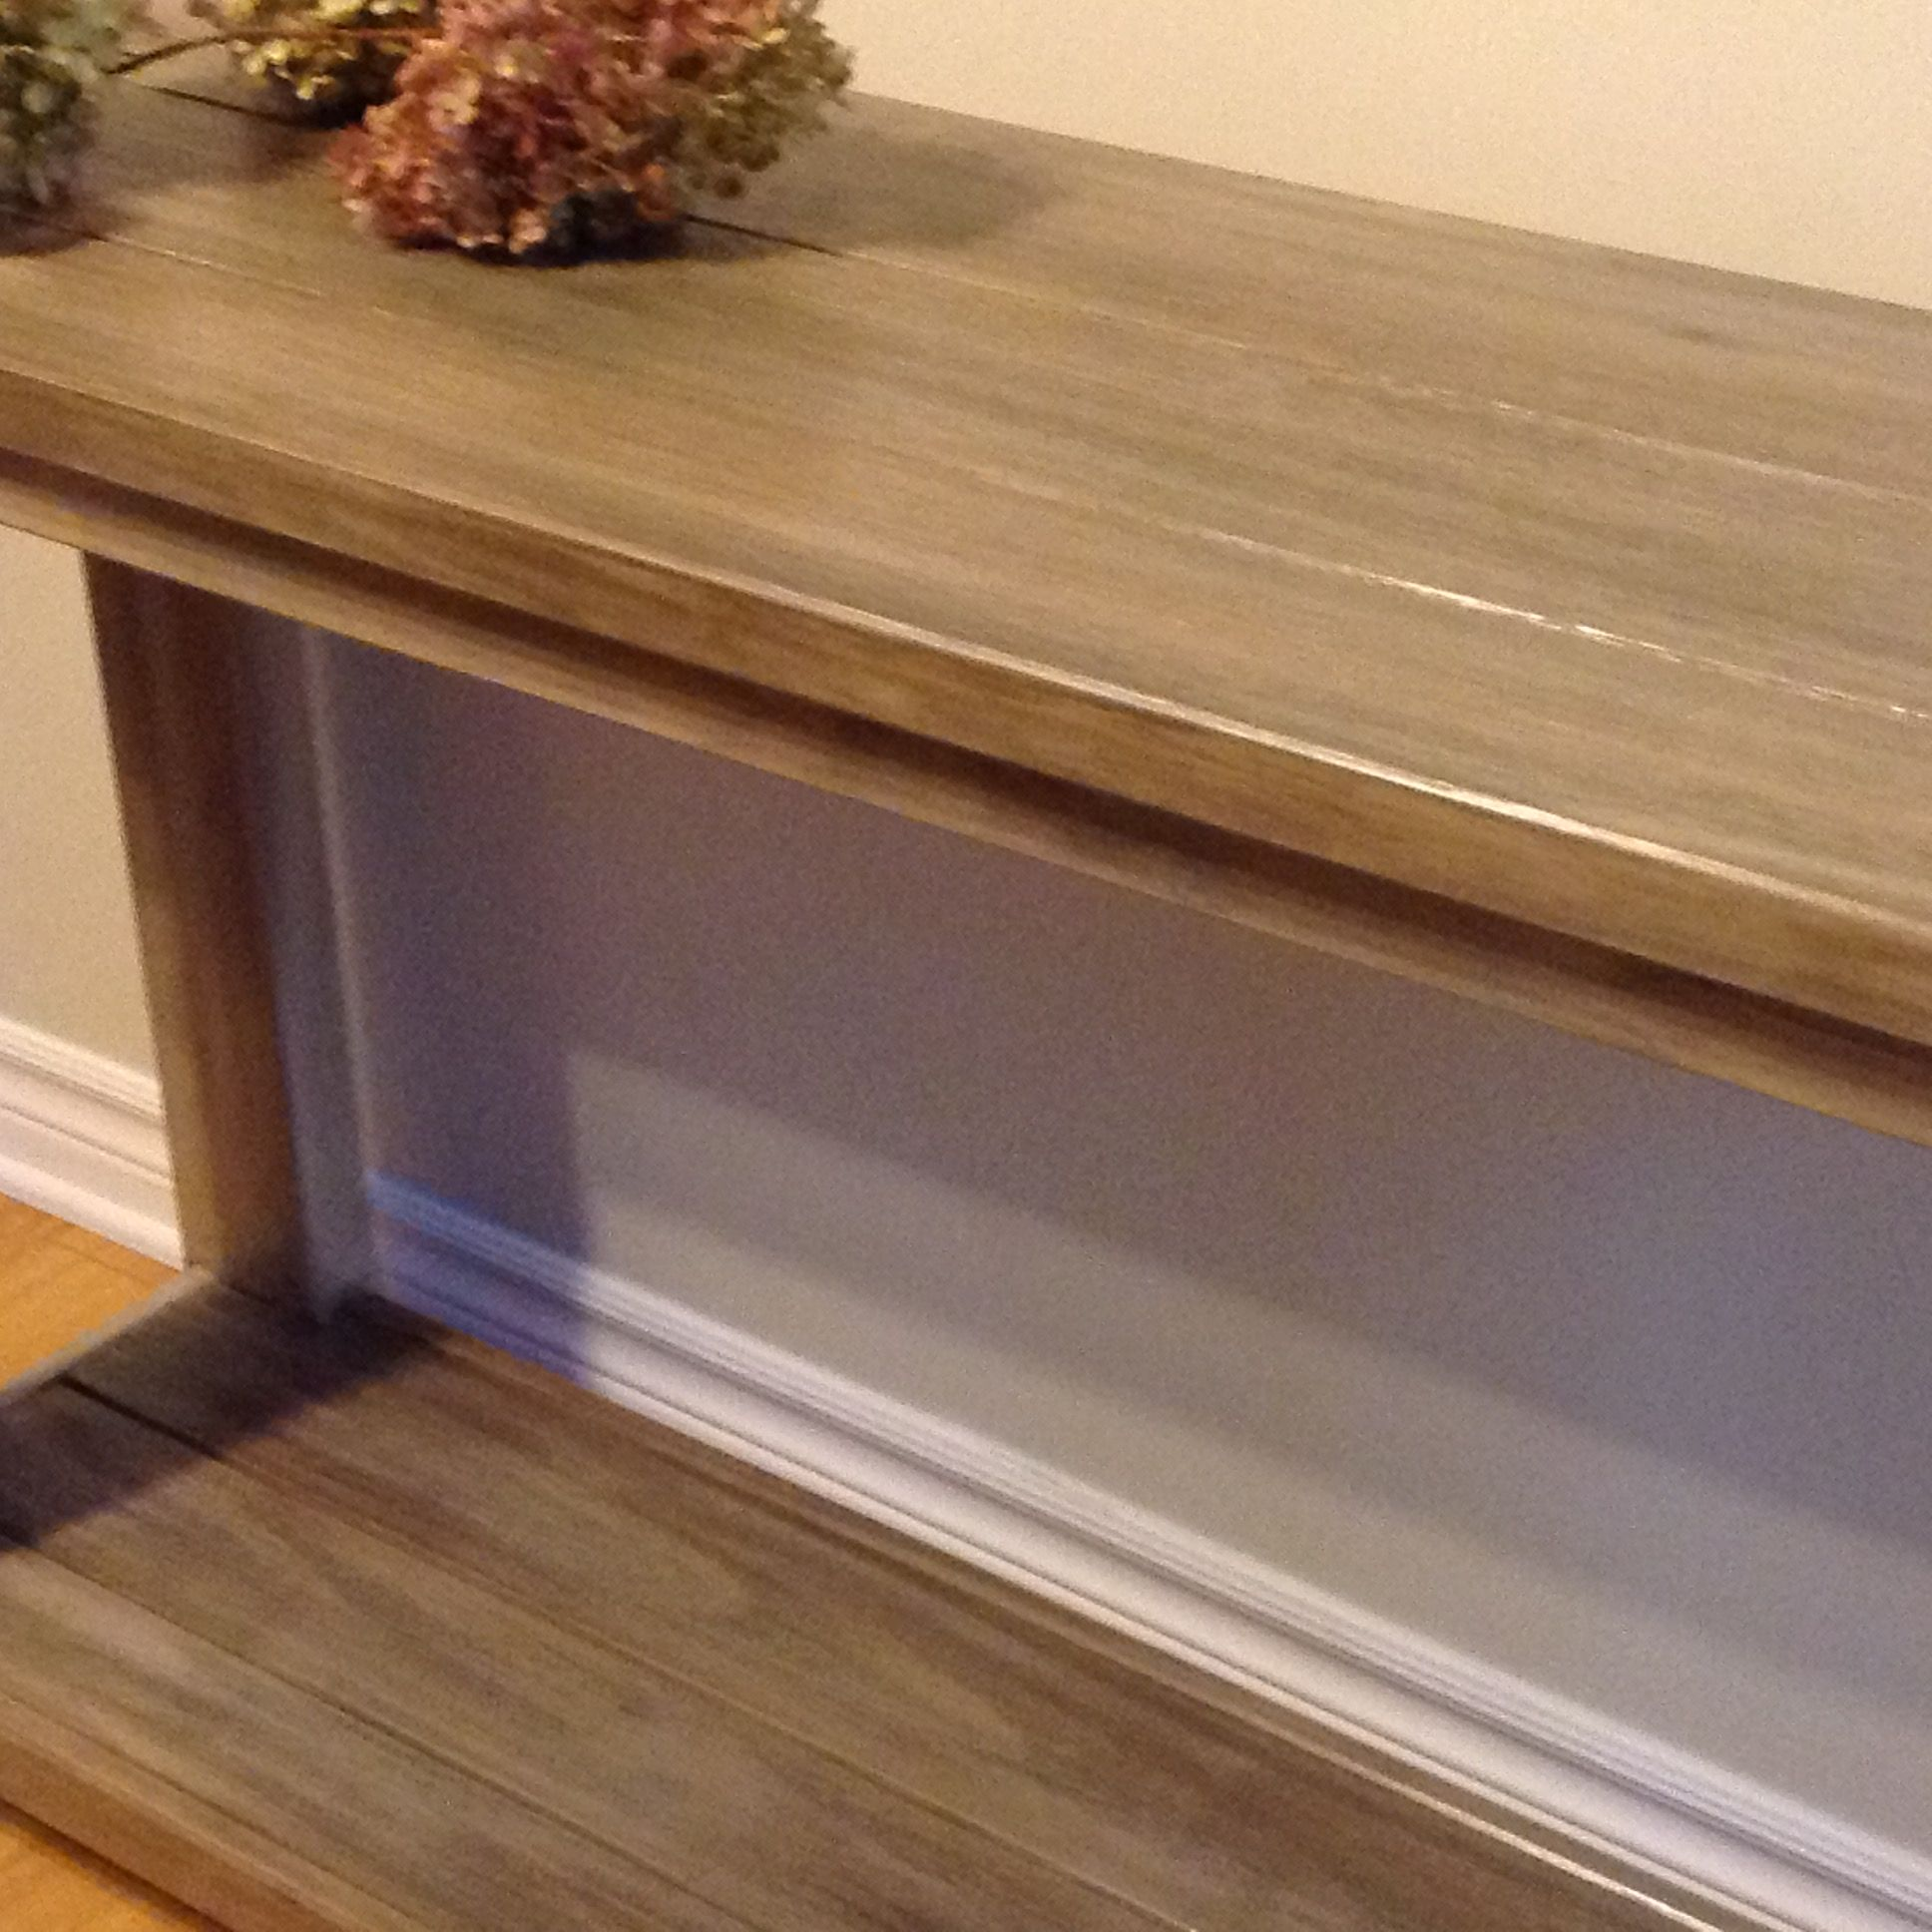 Ikea Pine Console Table Was Perfect Base For Barn Wood Finish Used